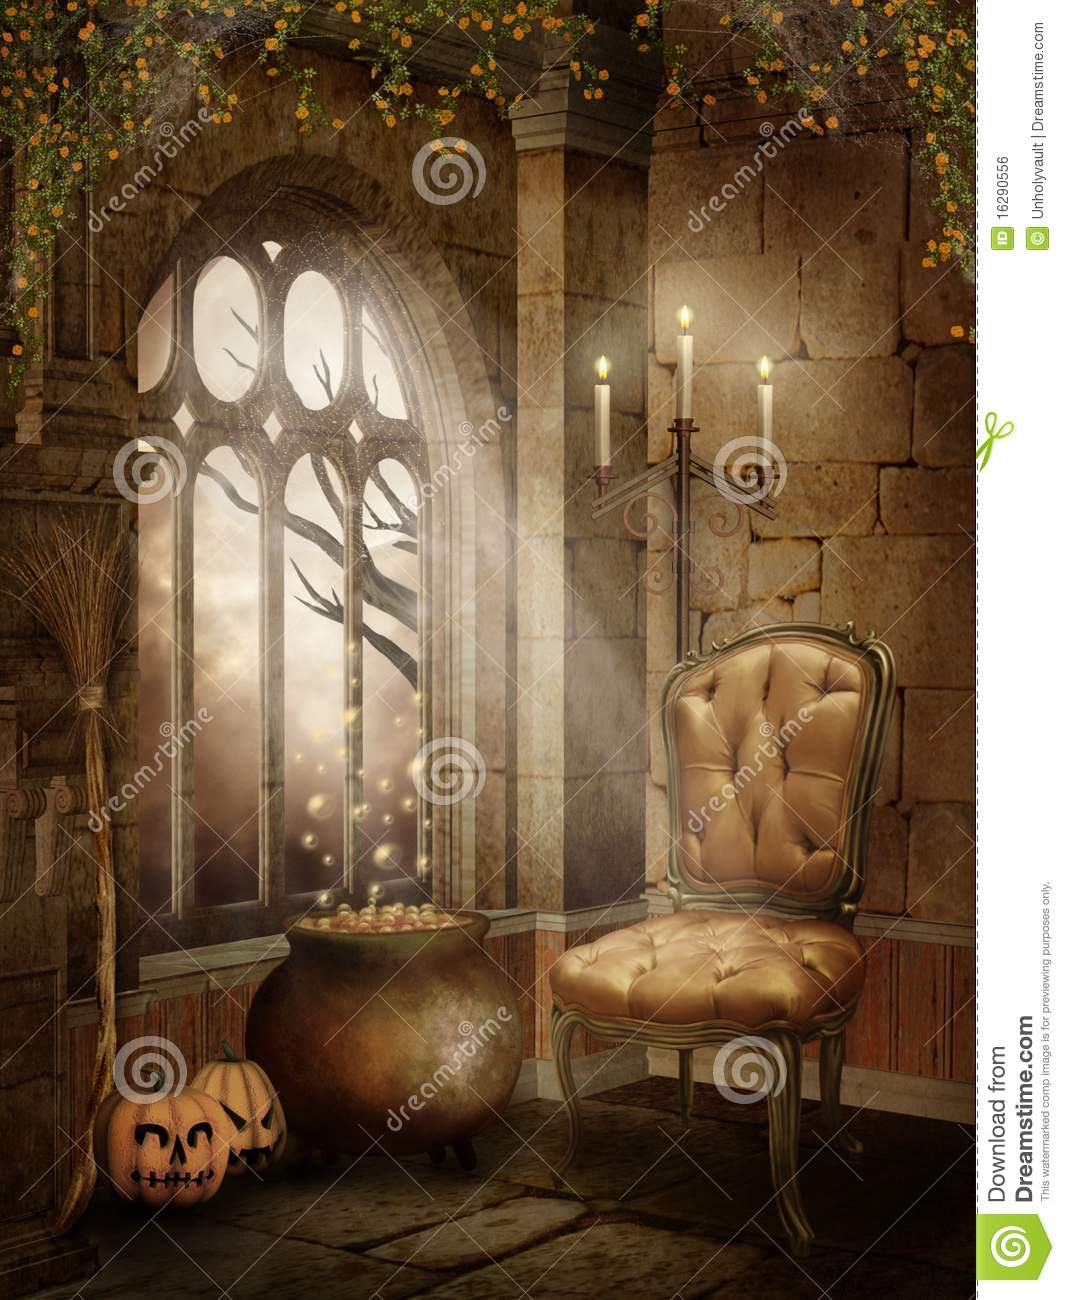 Castle room with halloween decorations stock illustration illustration of fantasy chair 16290556 - Castle room decore ...